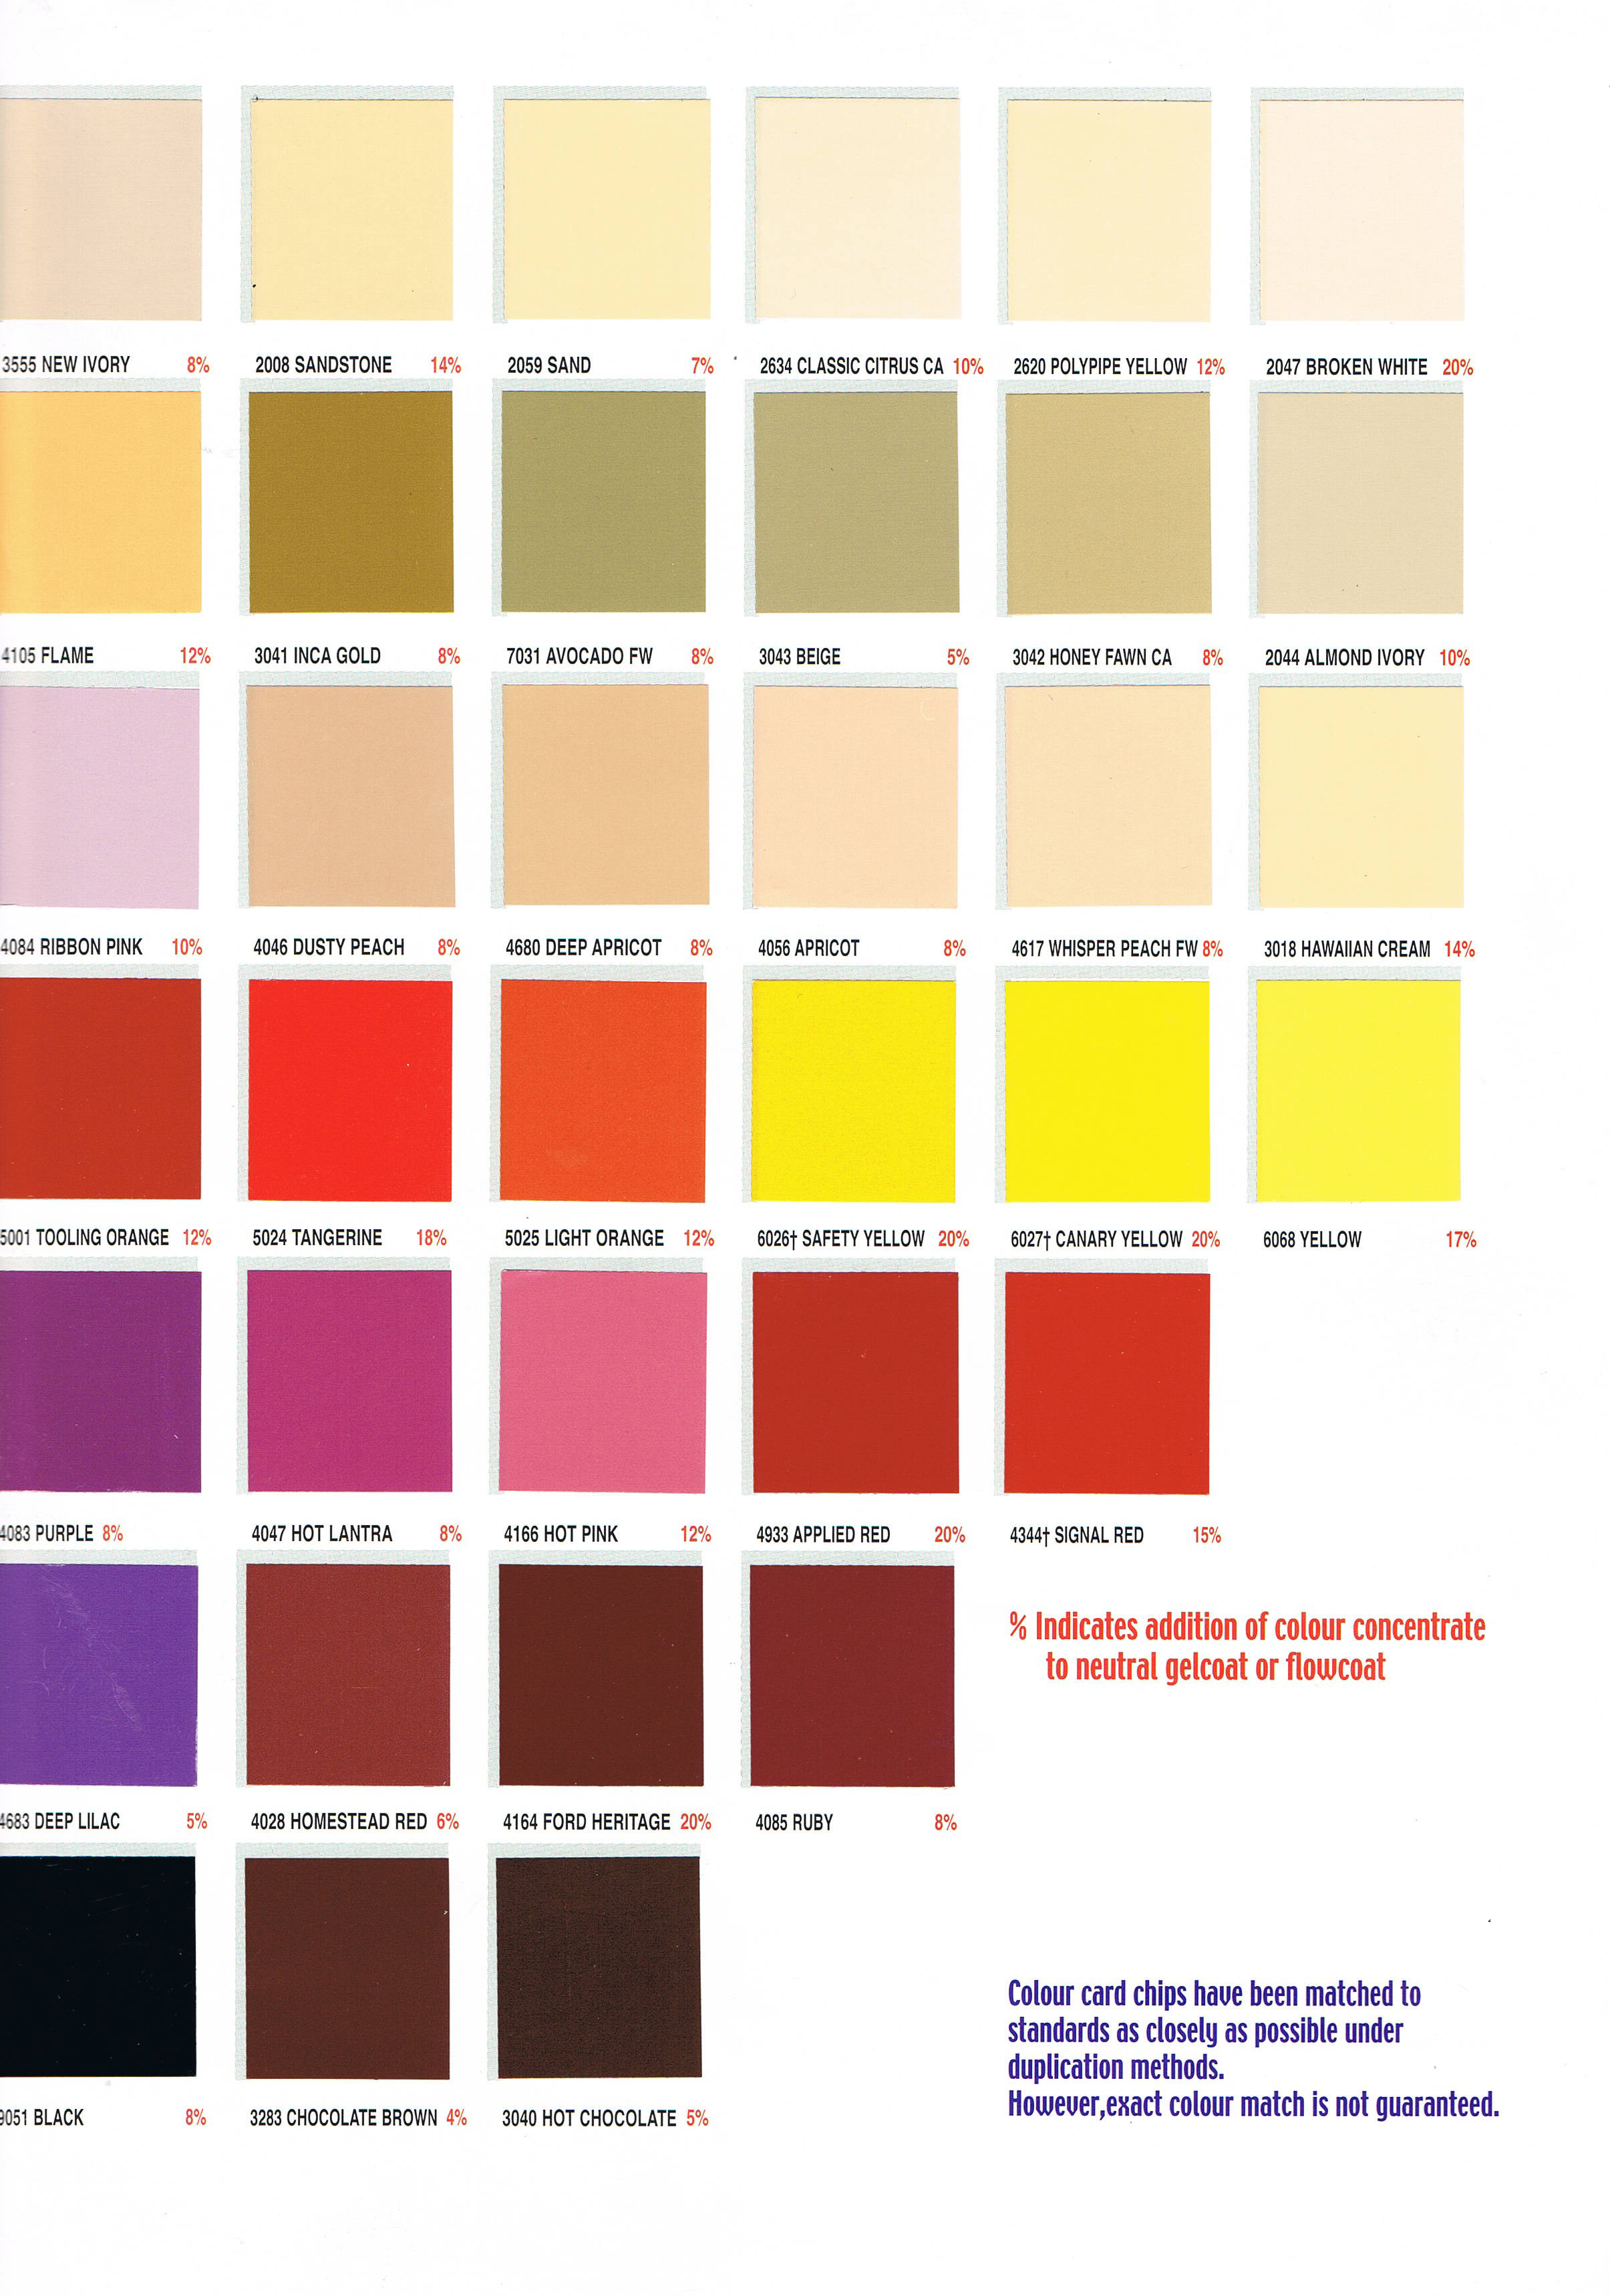 Sirius observatories available options beckstrom observatory colorchart 2 colorchart 1 nvjuhfo Images